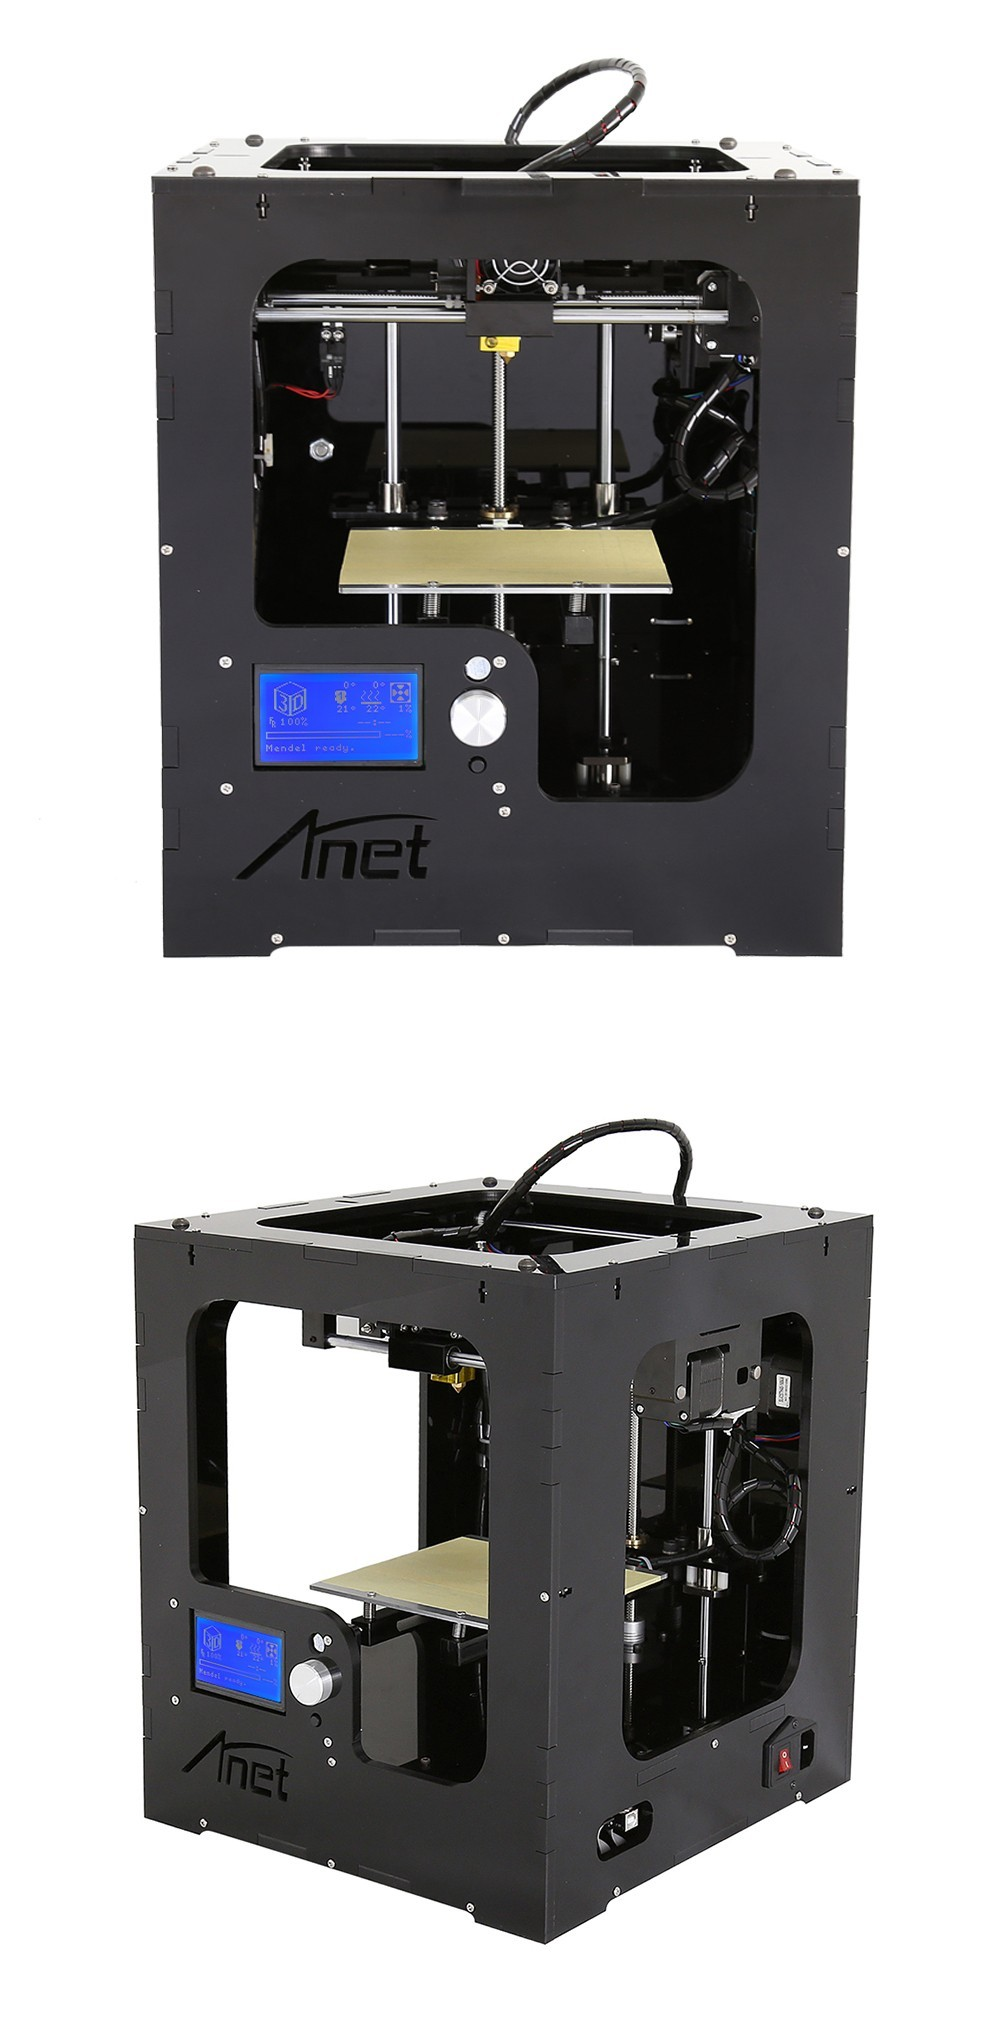 2019 High resolution 3d printer for sale fully assembled metal Anet A3S 3d printer machine large size 150*150*150mm 3d printings